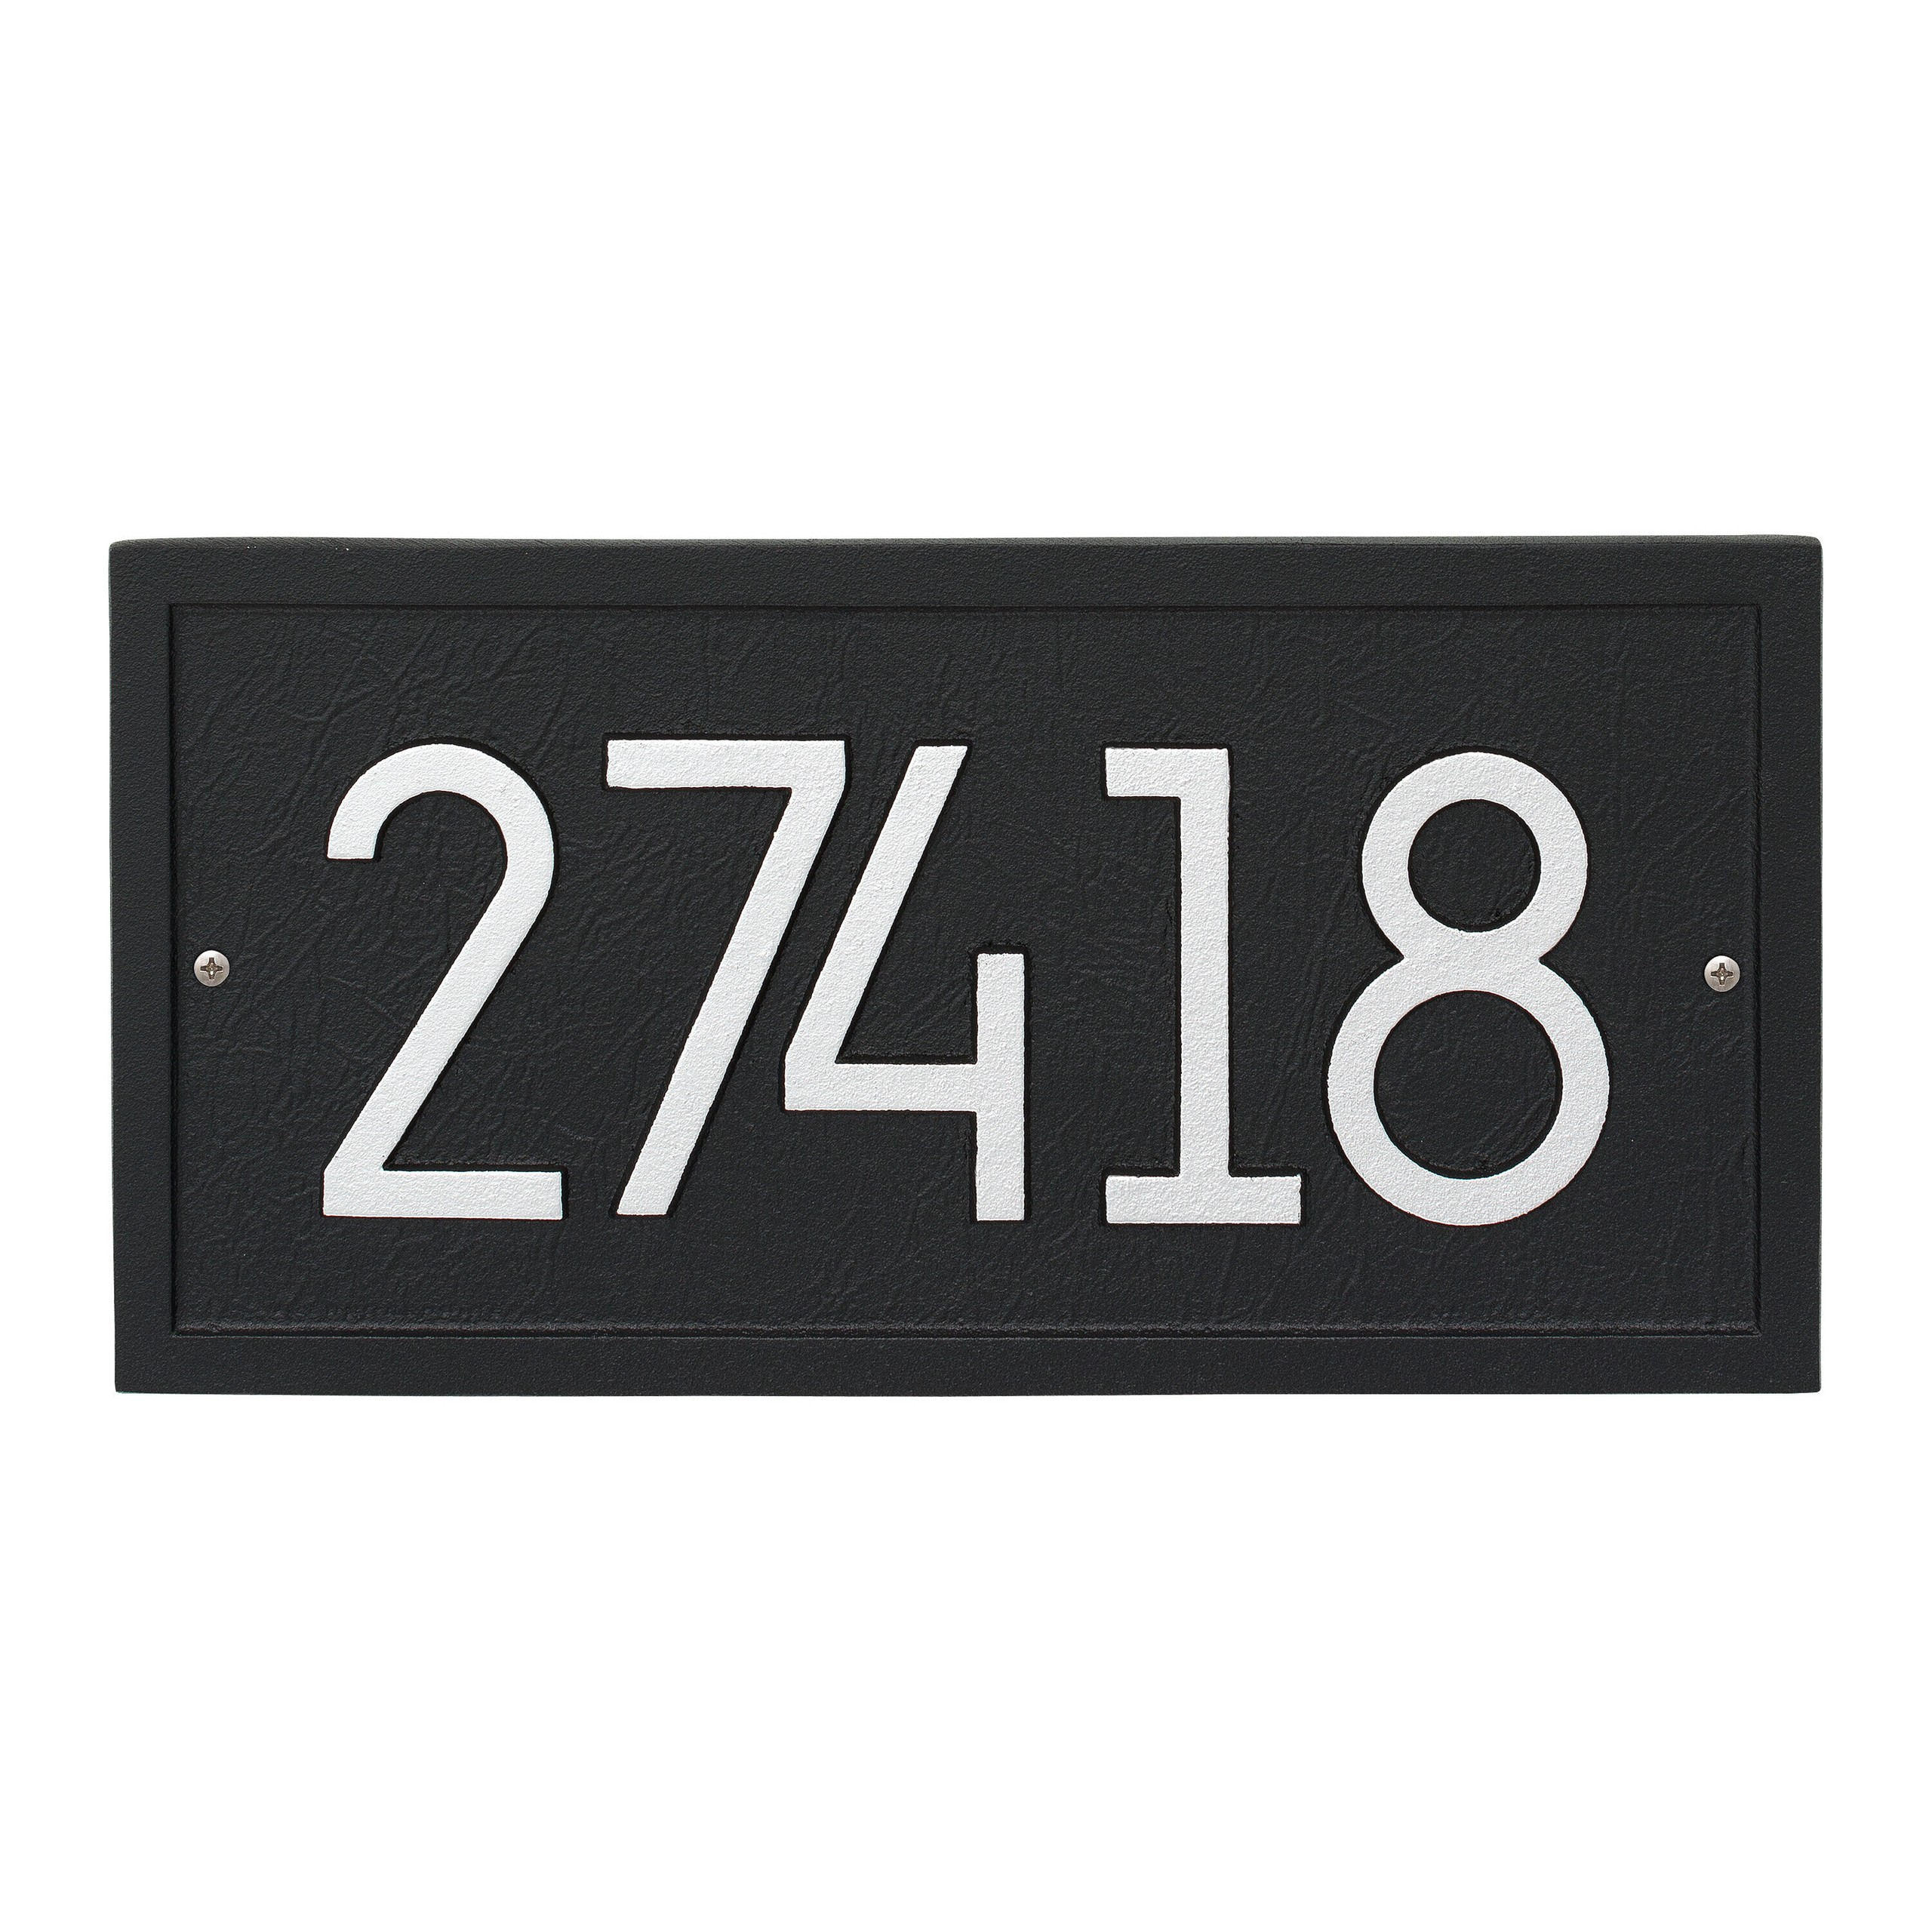 How To Choose An Address Plaque And Sign